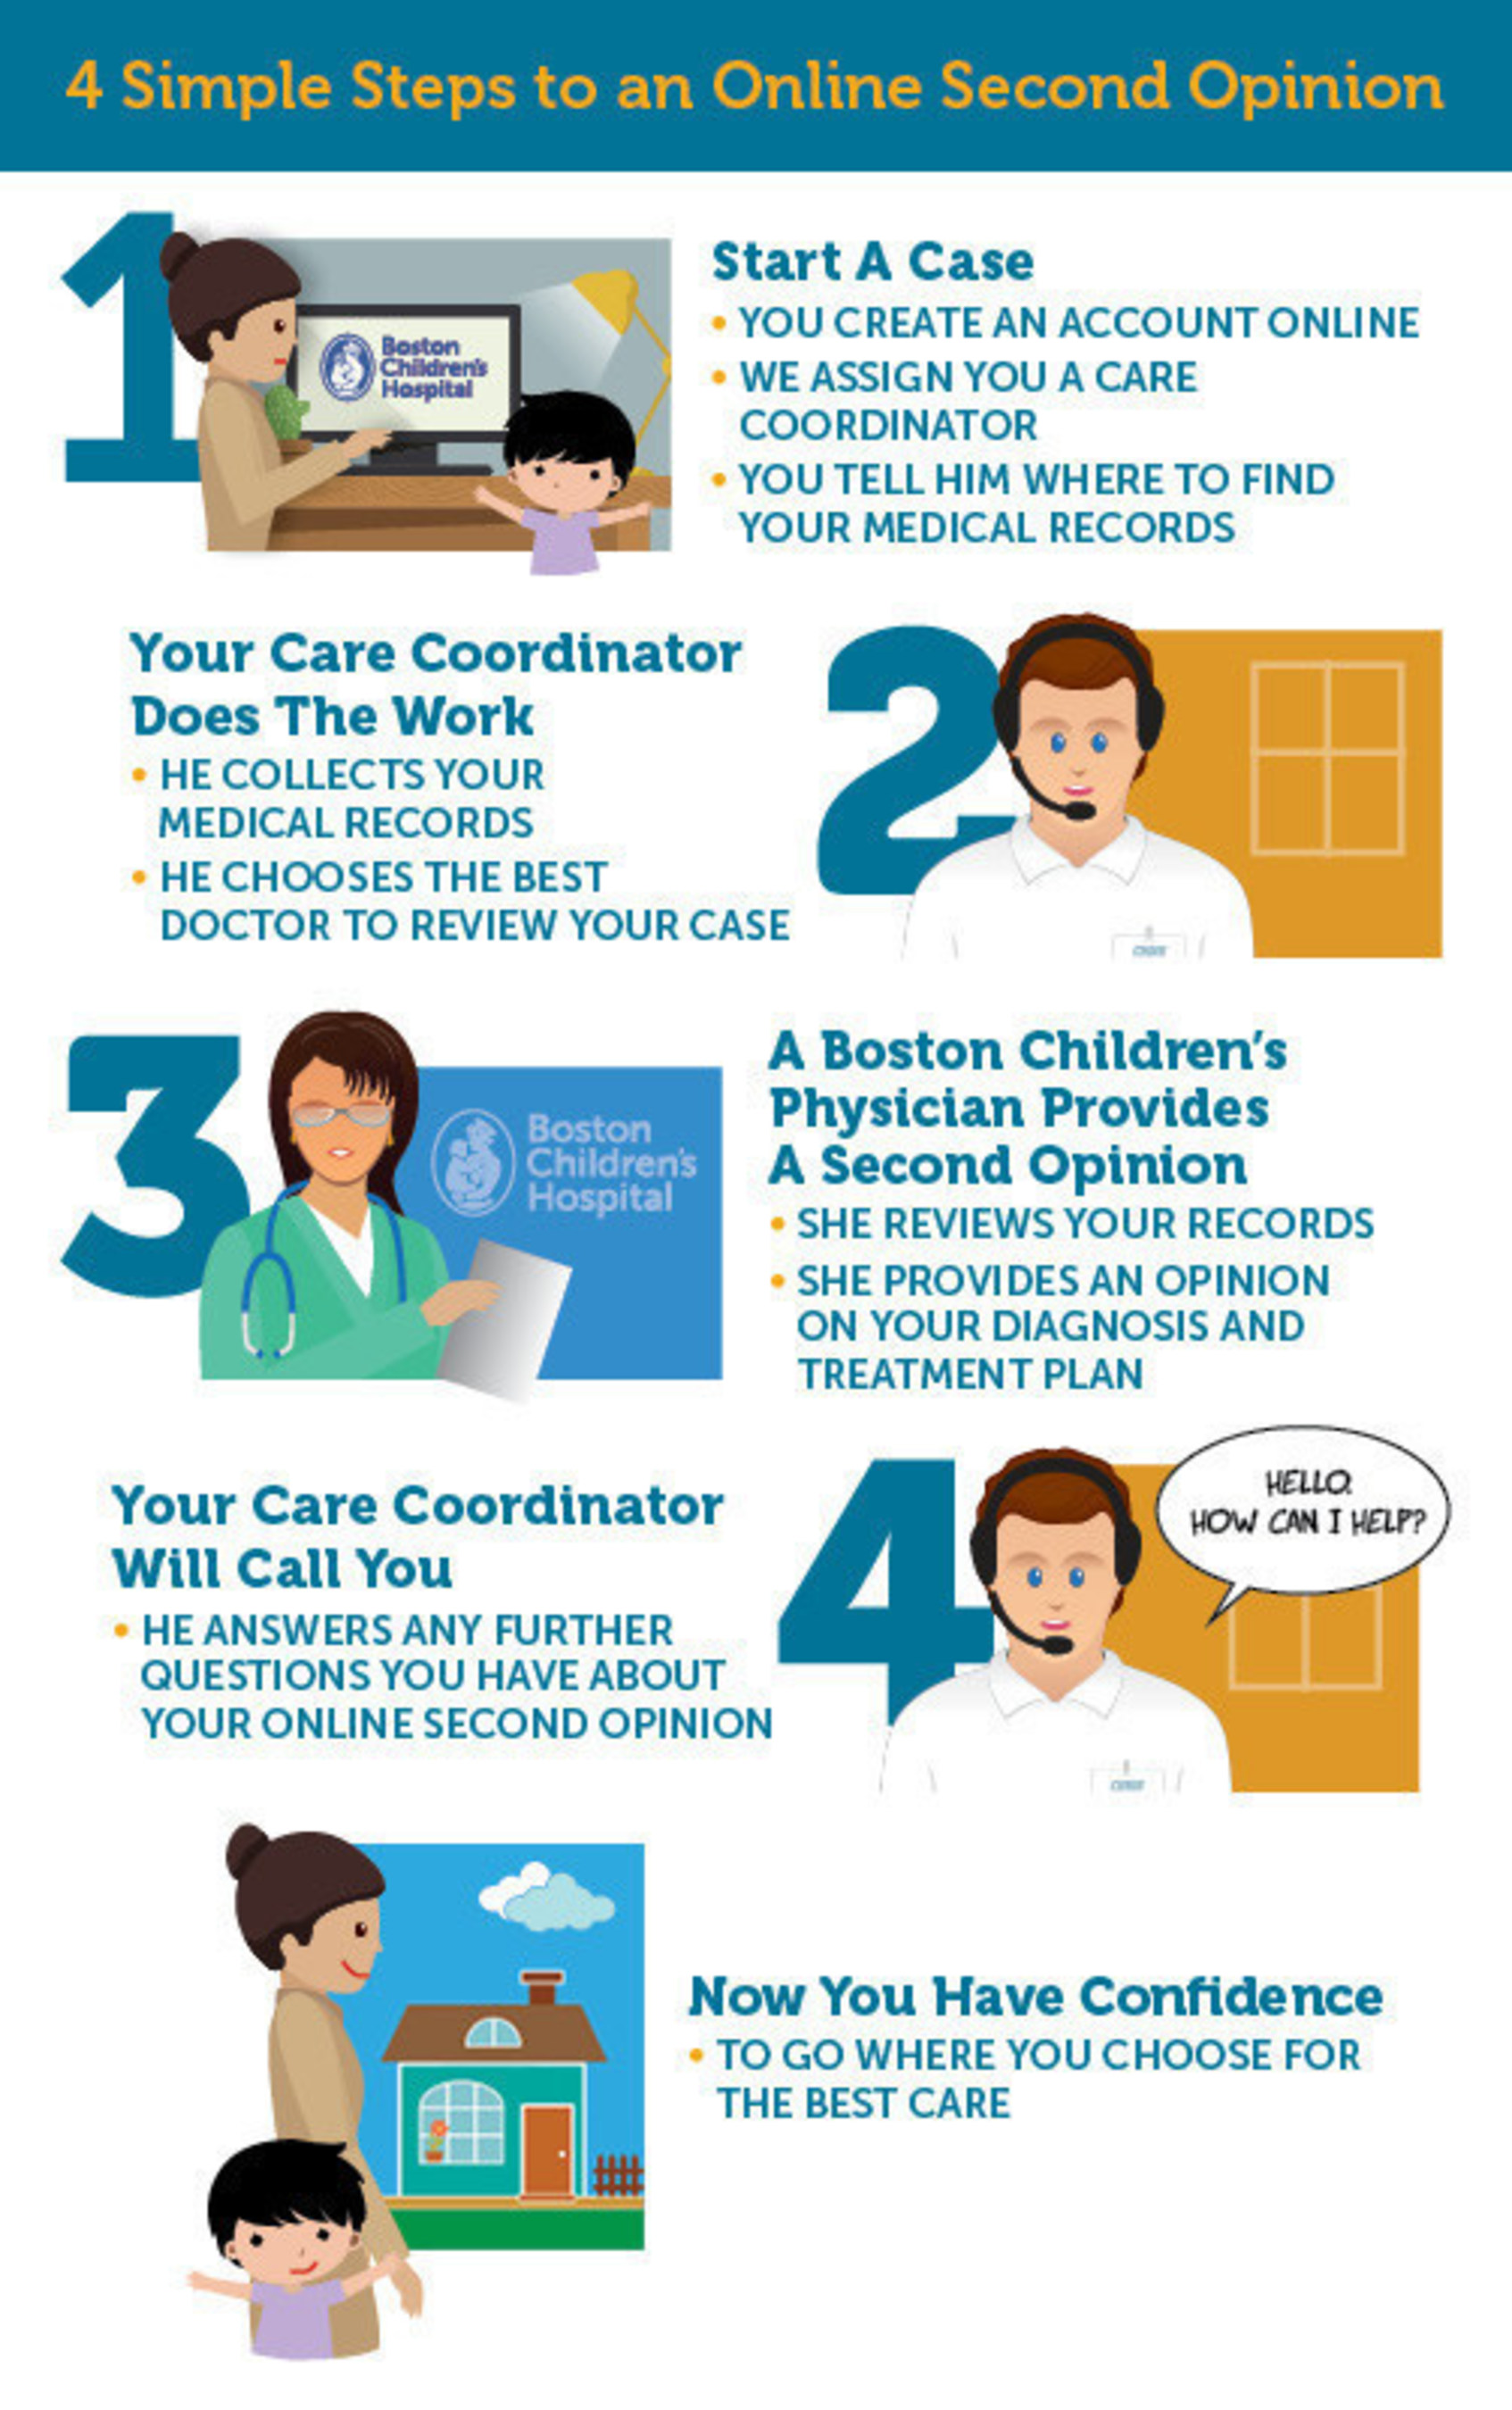 Simple steps for a second opinion